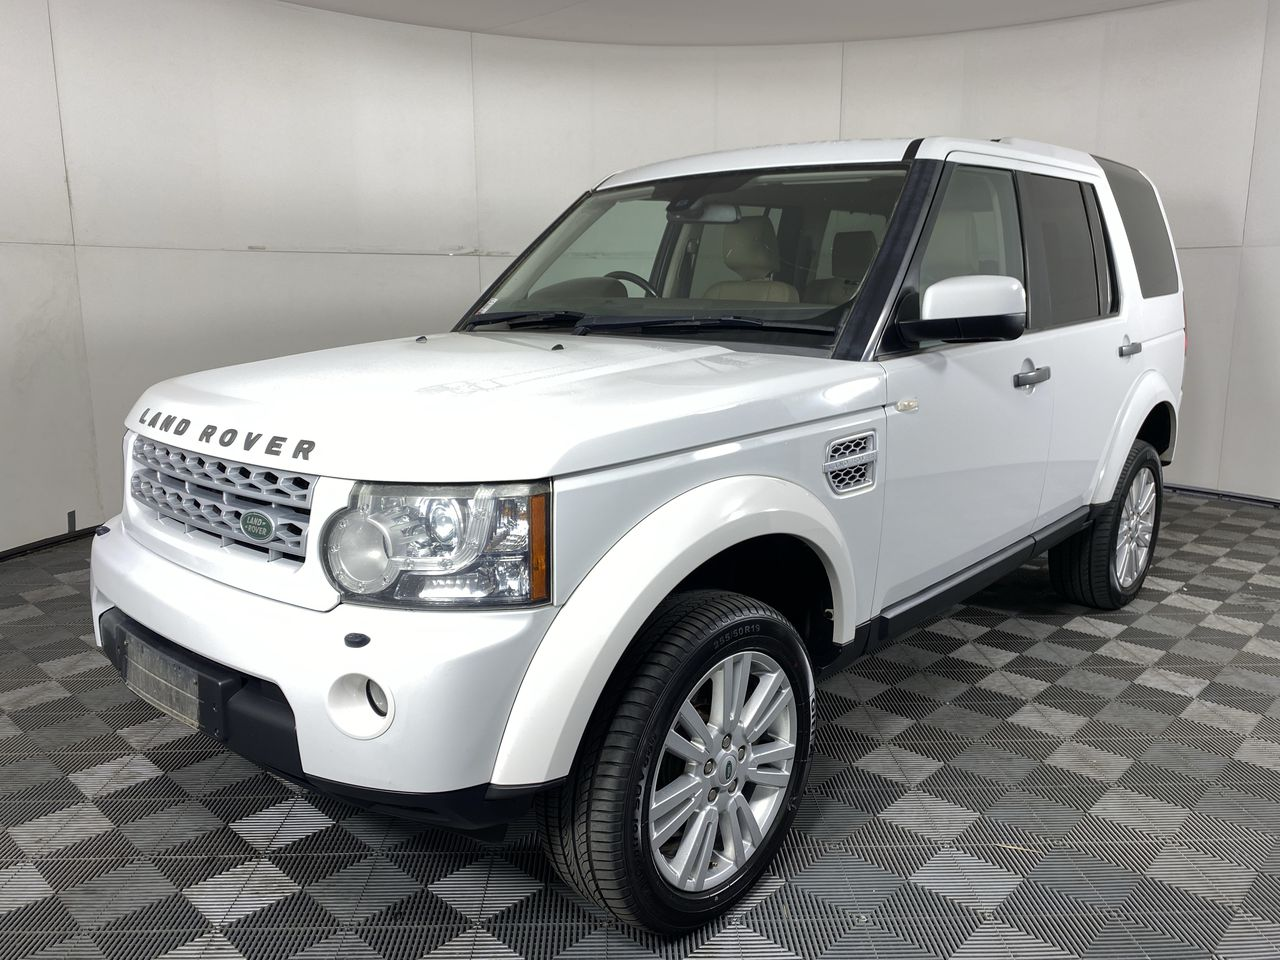 2011 (2012) Land Rover Discovery 4 3.0 SDV6 SE Series 4 T/Diesel Auto